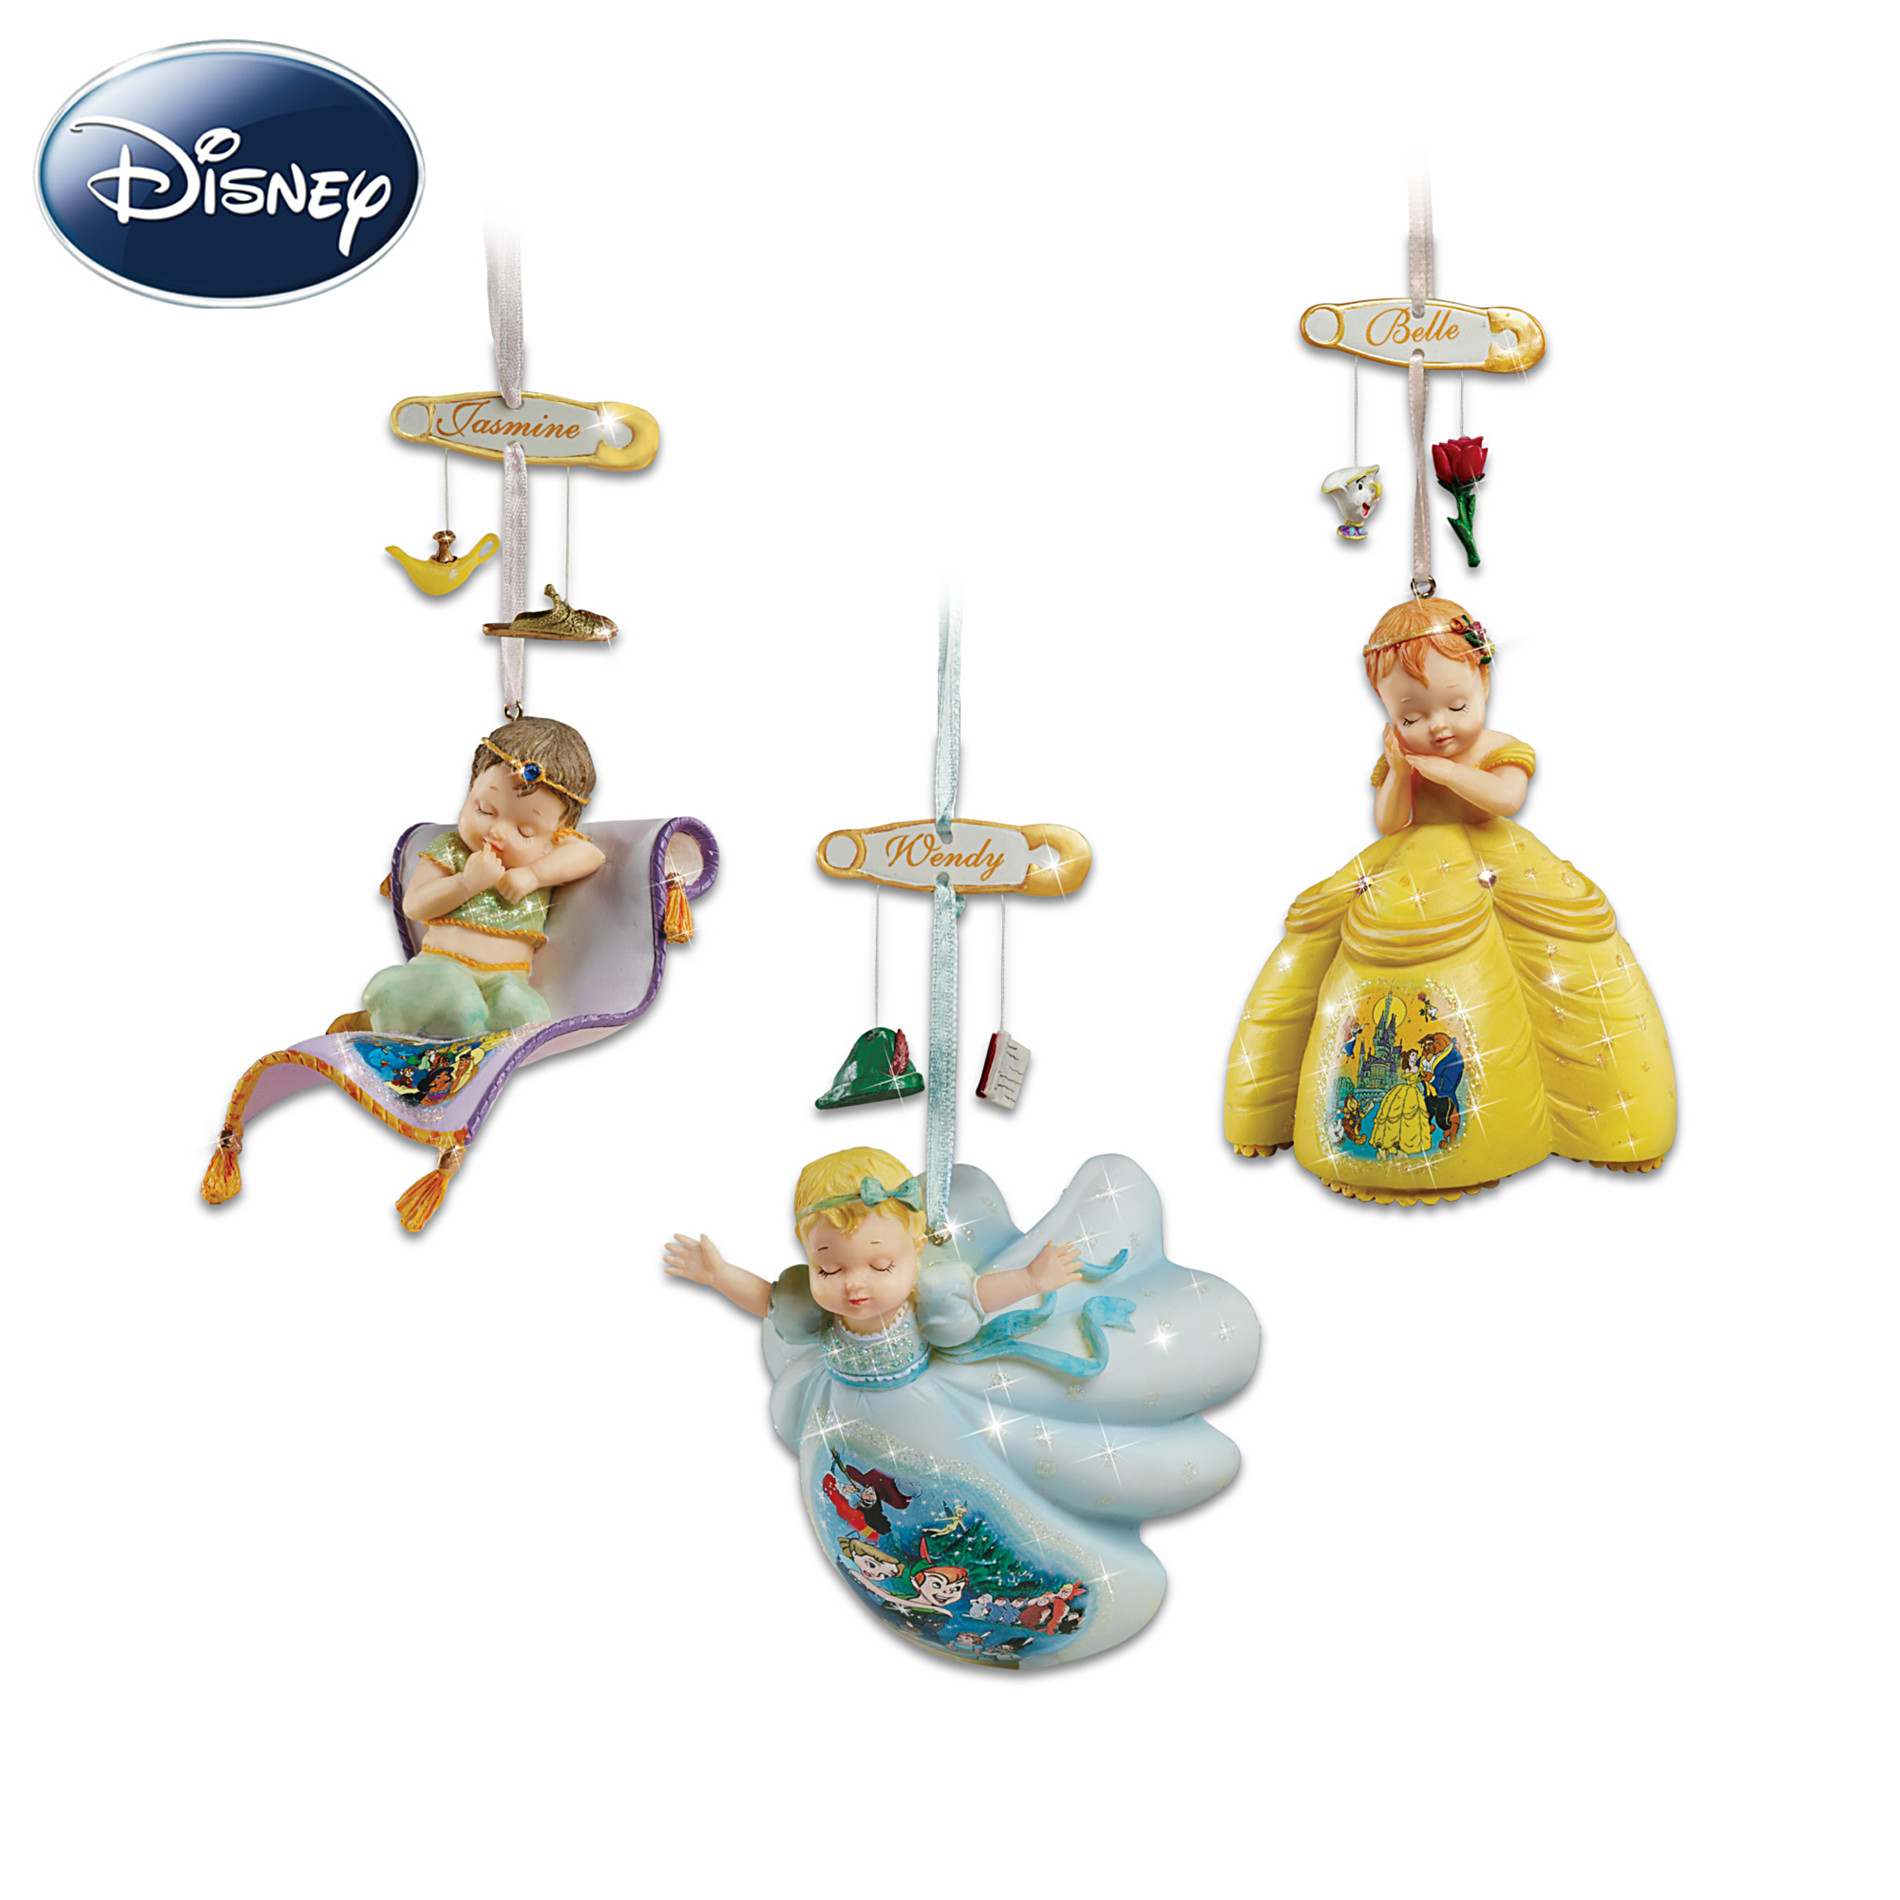 Hawthorne Village Disney Dreams Come True Christmas Ornament Set at Sears.com